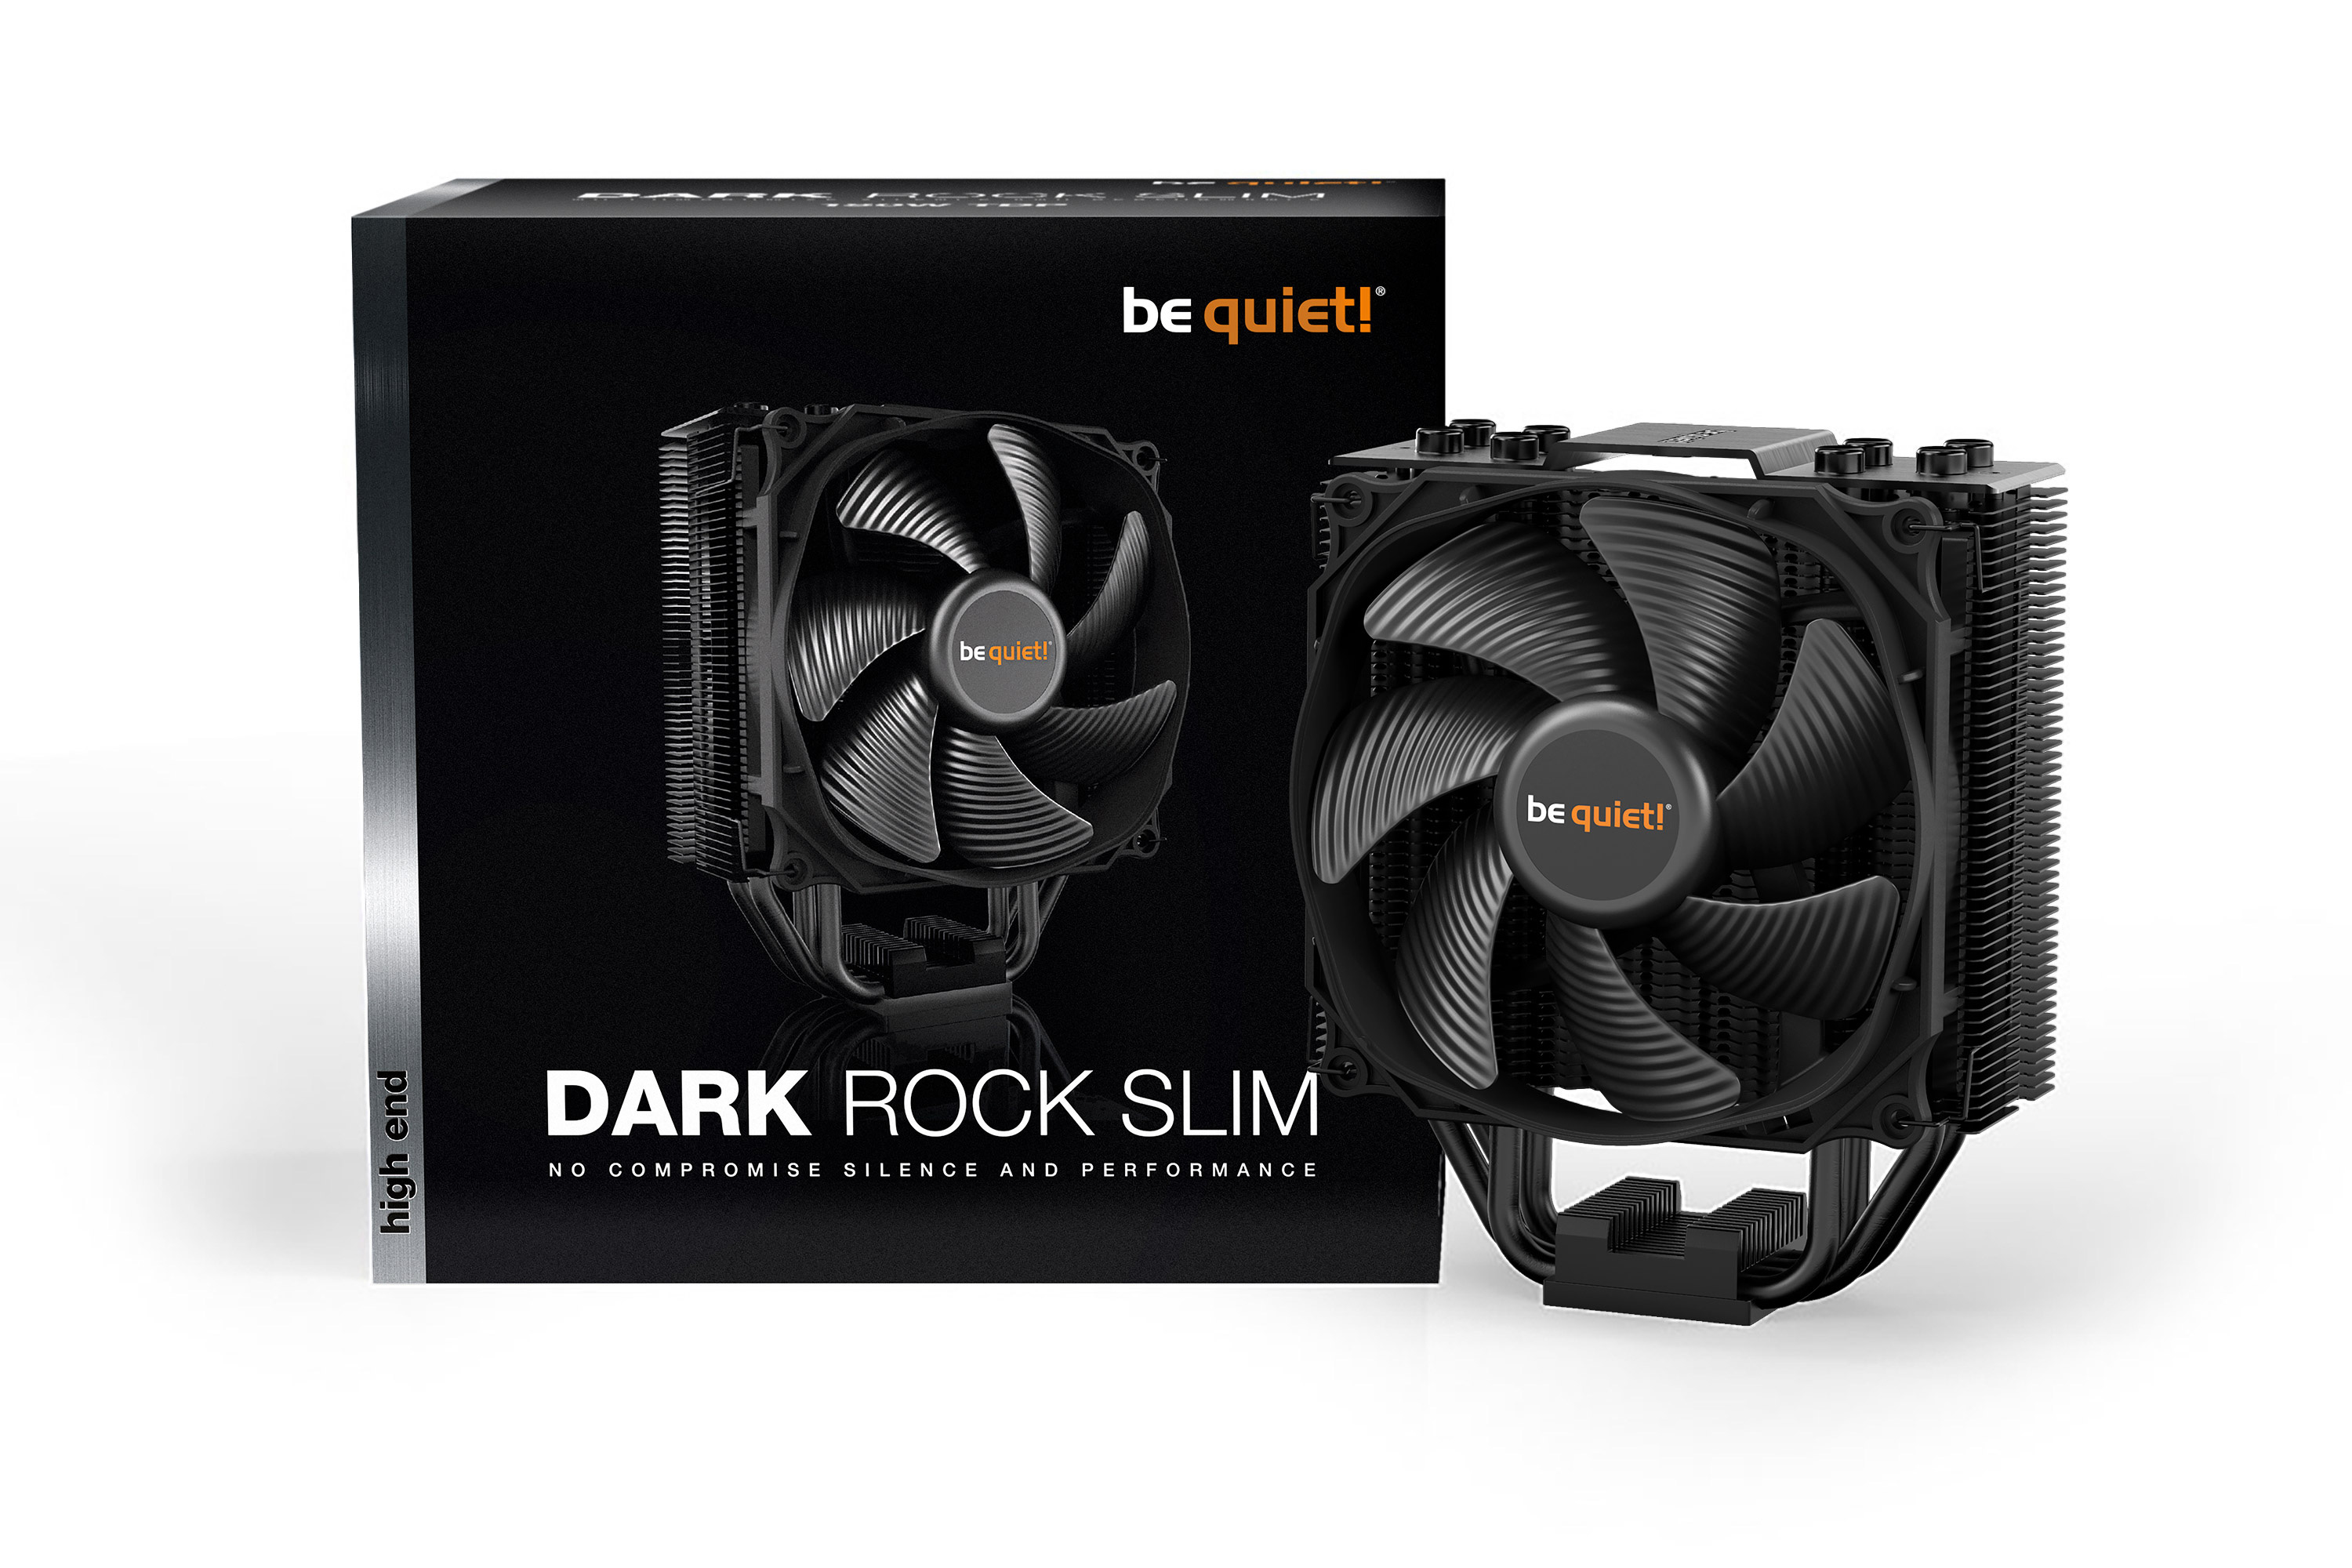 be quiet! Dark Rock Slim, 180W TDP, Intel LGA 1150 / 1151 / 1155 / 1156 / 1366 / 2011(-3) Square ILM / 2066 AMD: AM2(+) / AM3(+) / AM4 / FM1 / FM2(+)